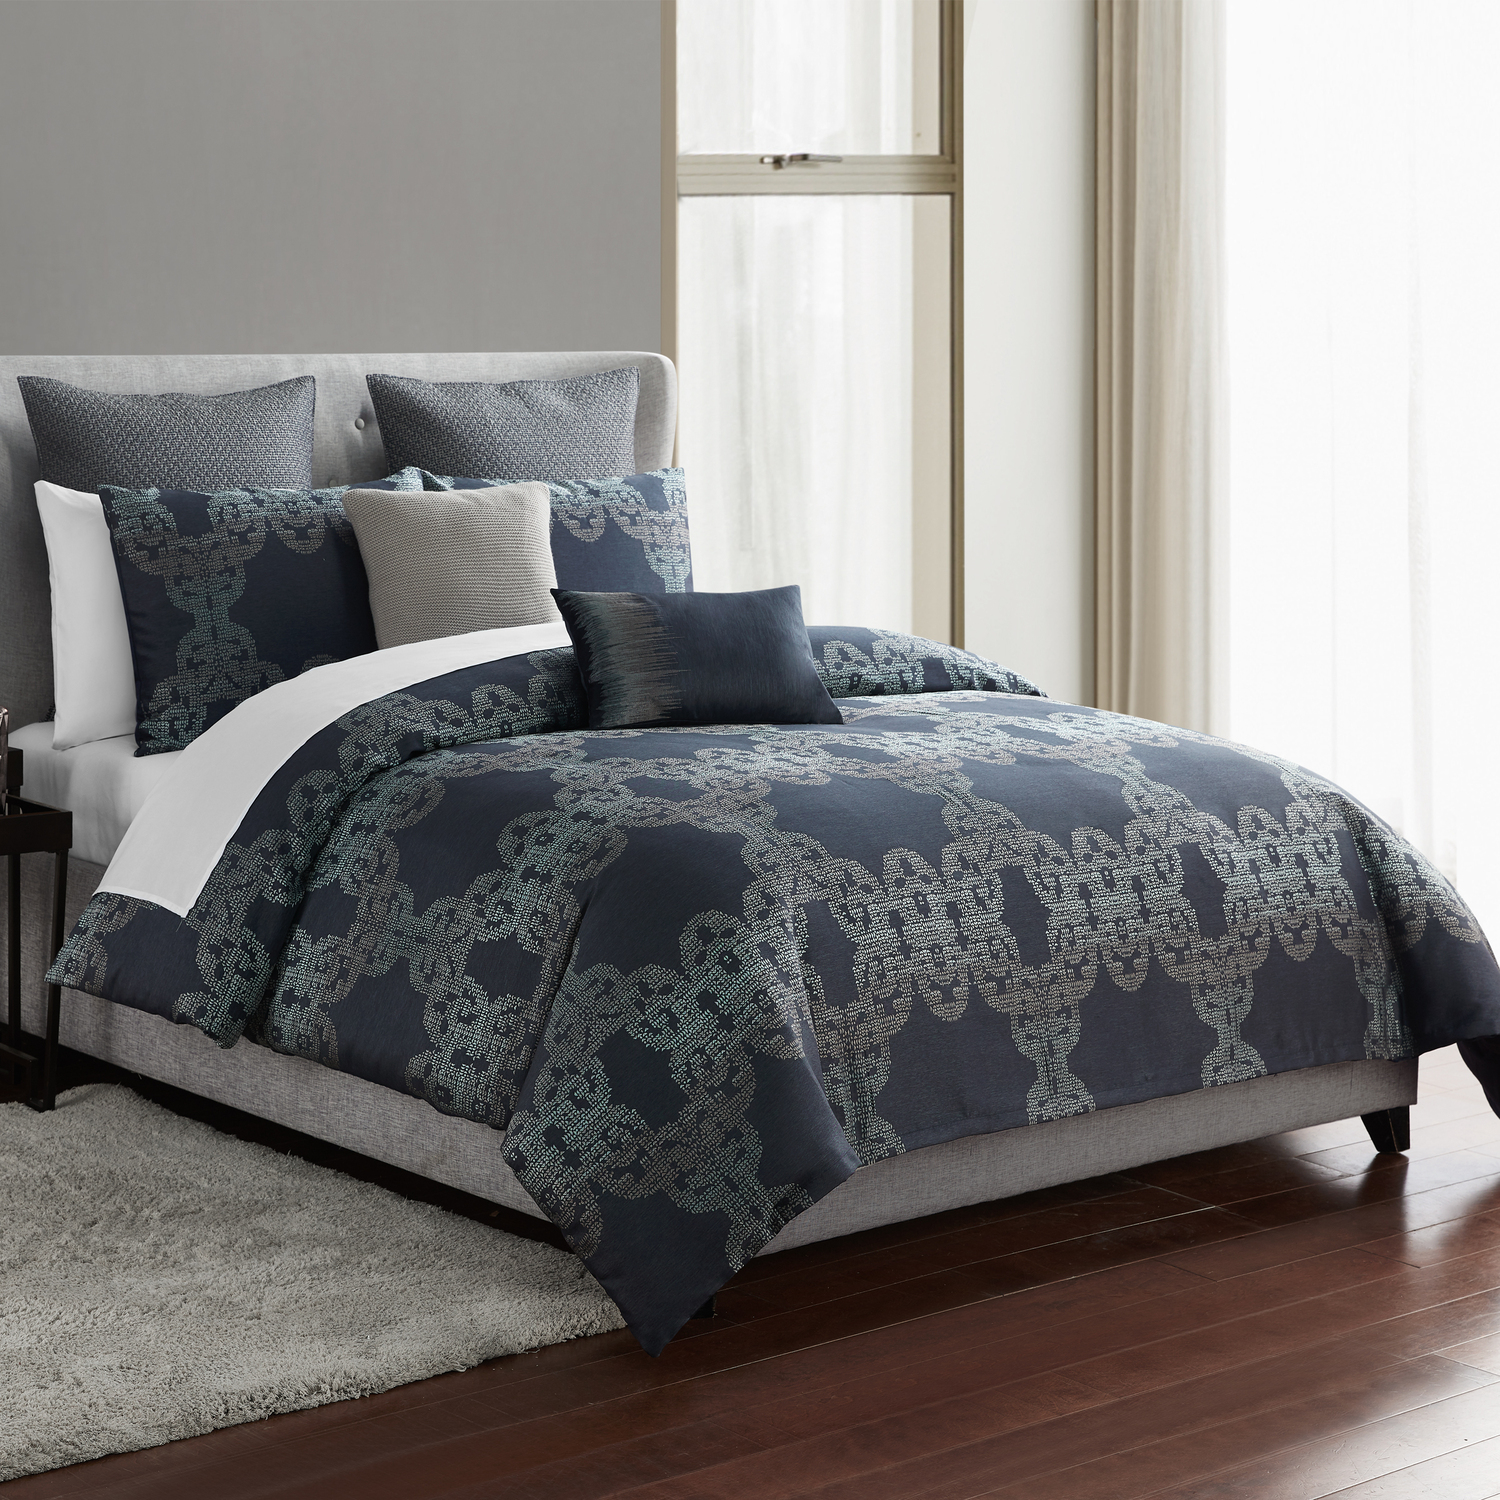 Orion by Highline Bedding Co.